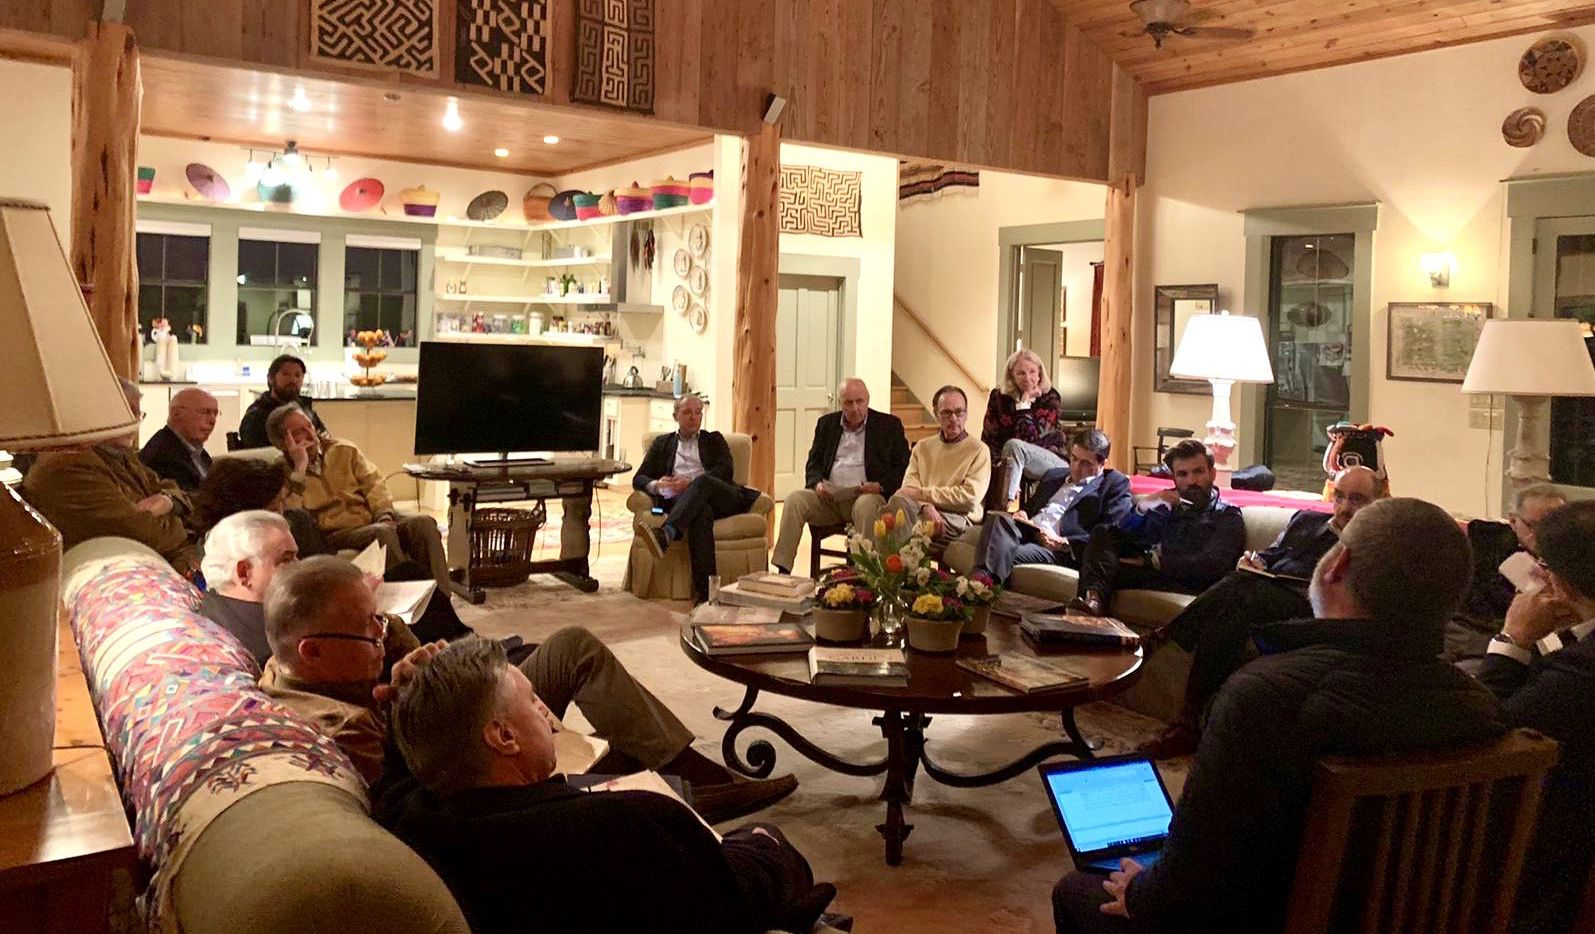 A dozen former U.S. and Mexico ambassadors met in Texas' Hill Country to talk about the future of the relationship between their countries.